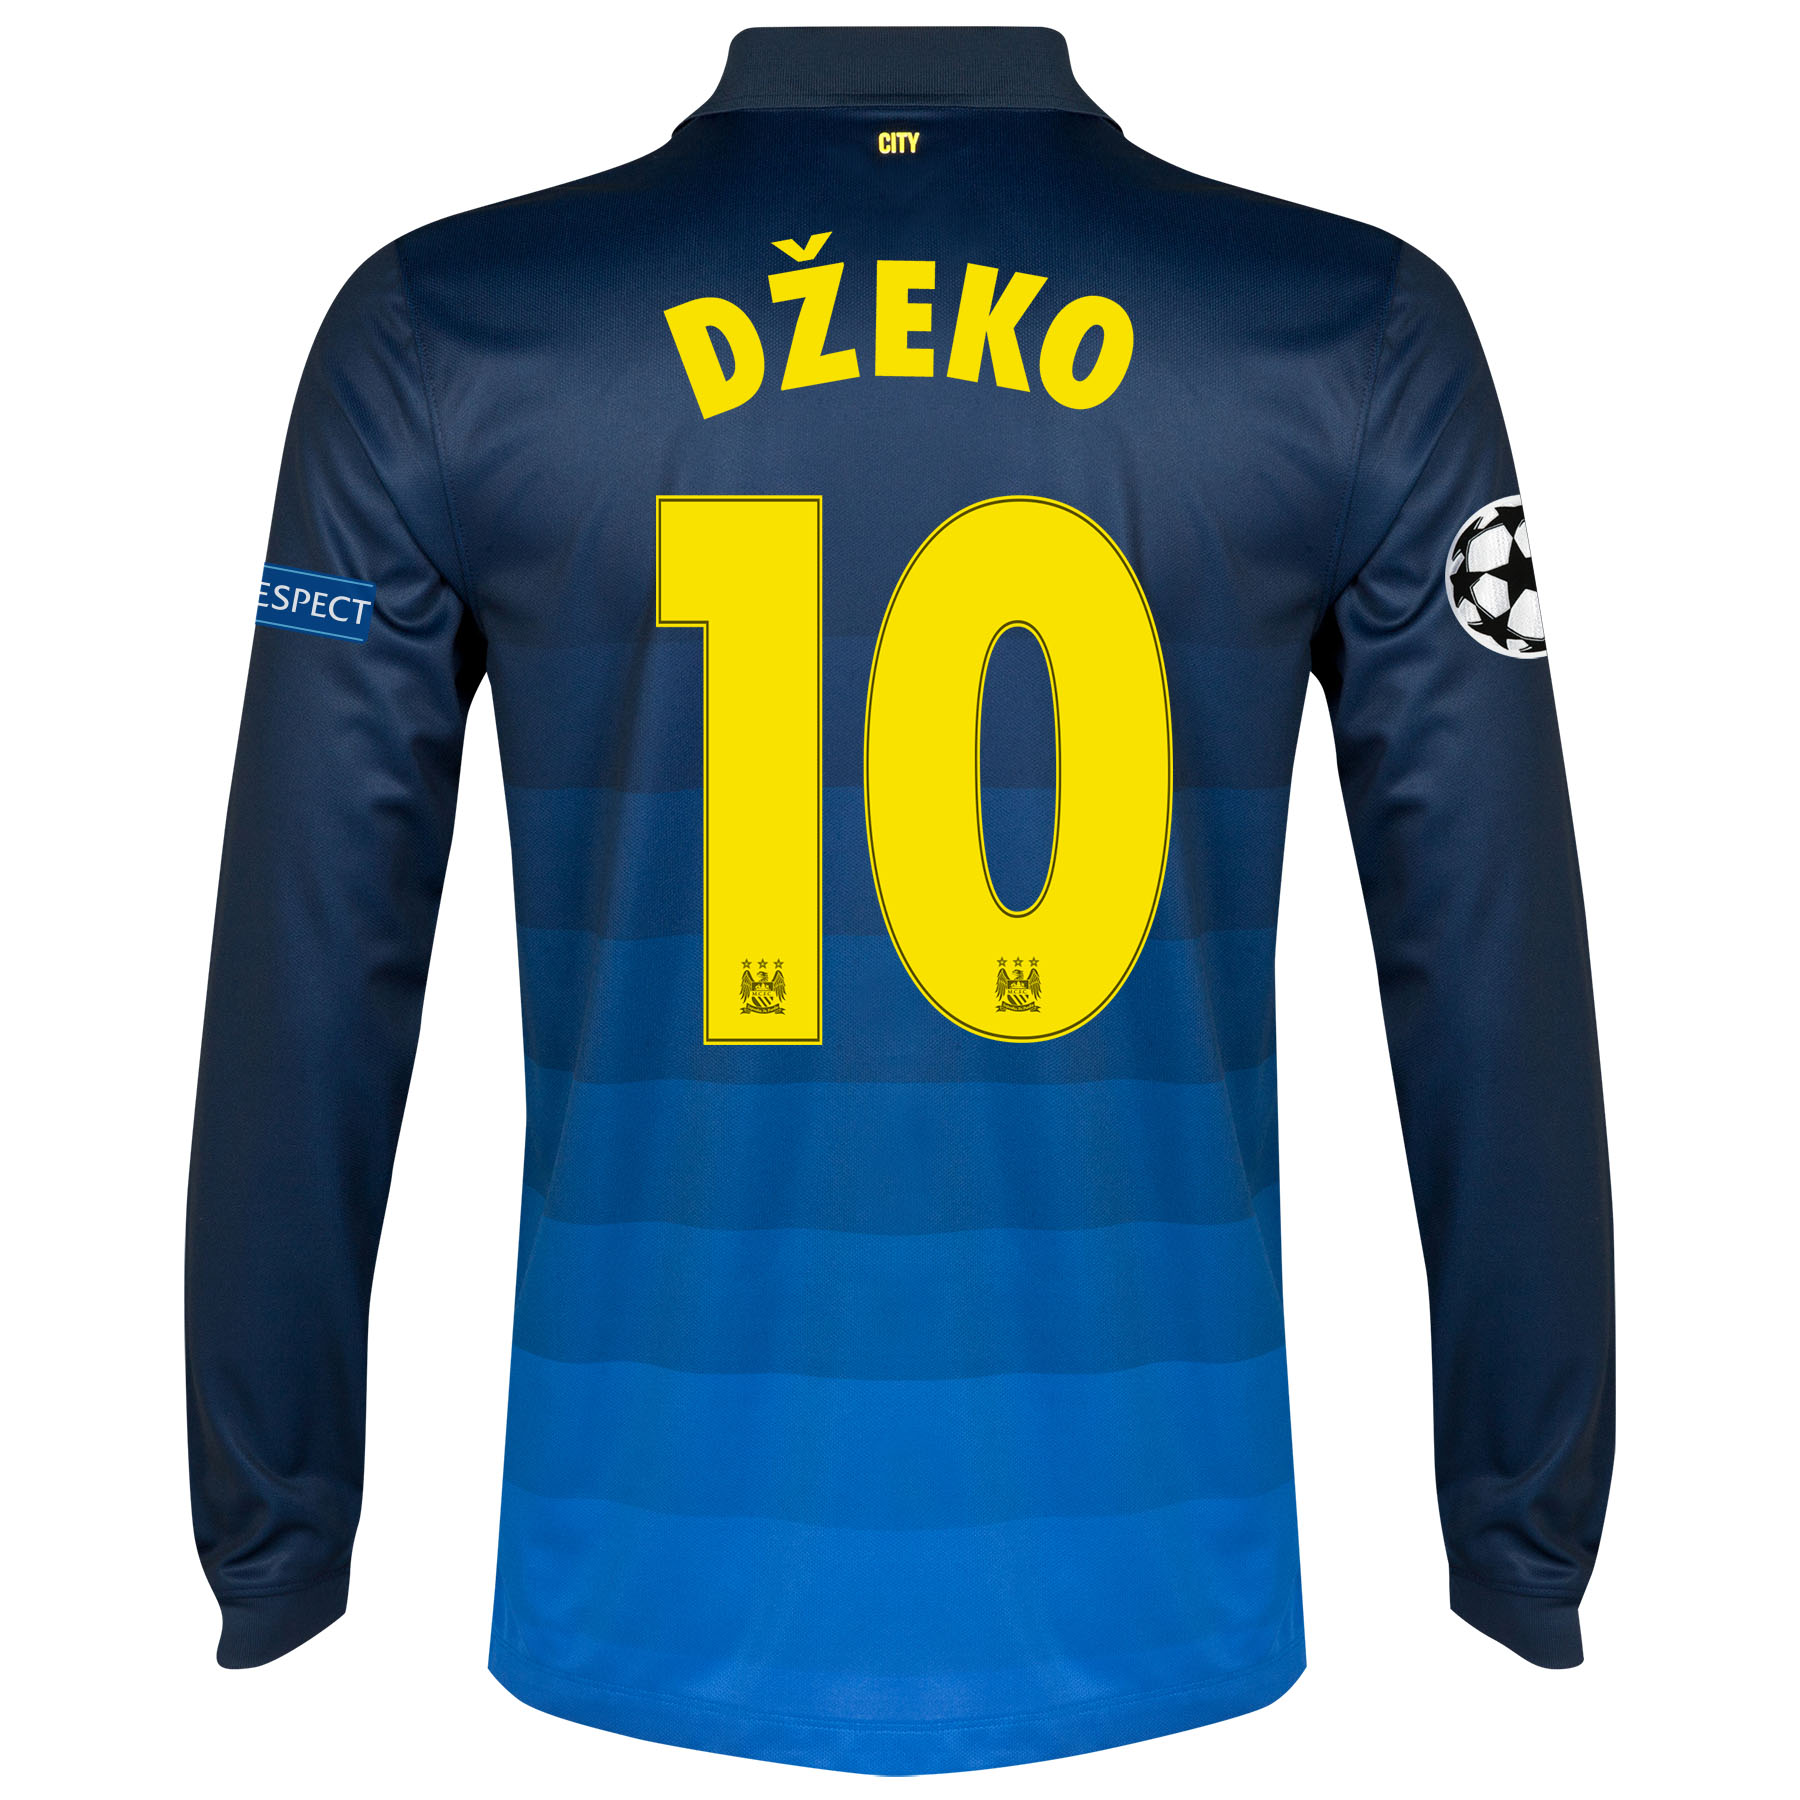 Manchester City UEFA Champions League Away Shirt 2014/15 - Long Sleeve with Dzeko 10 printing